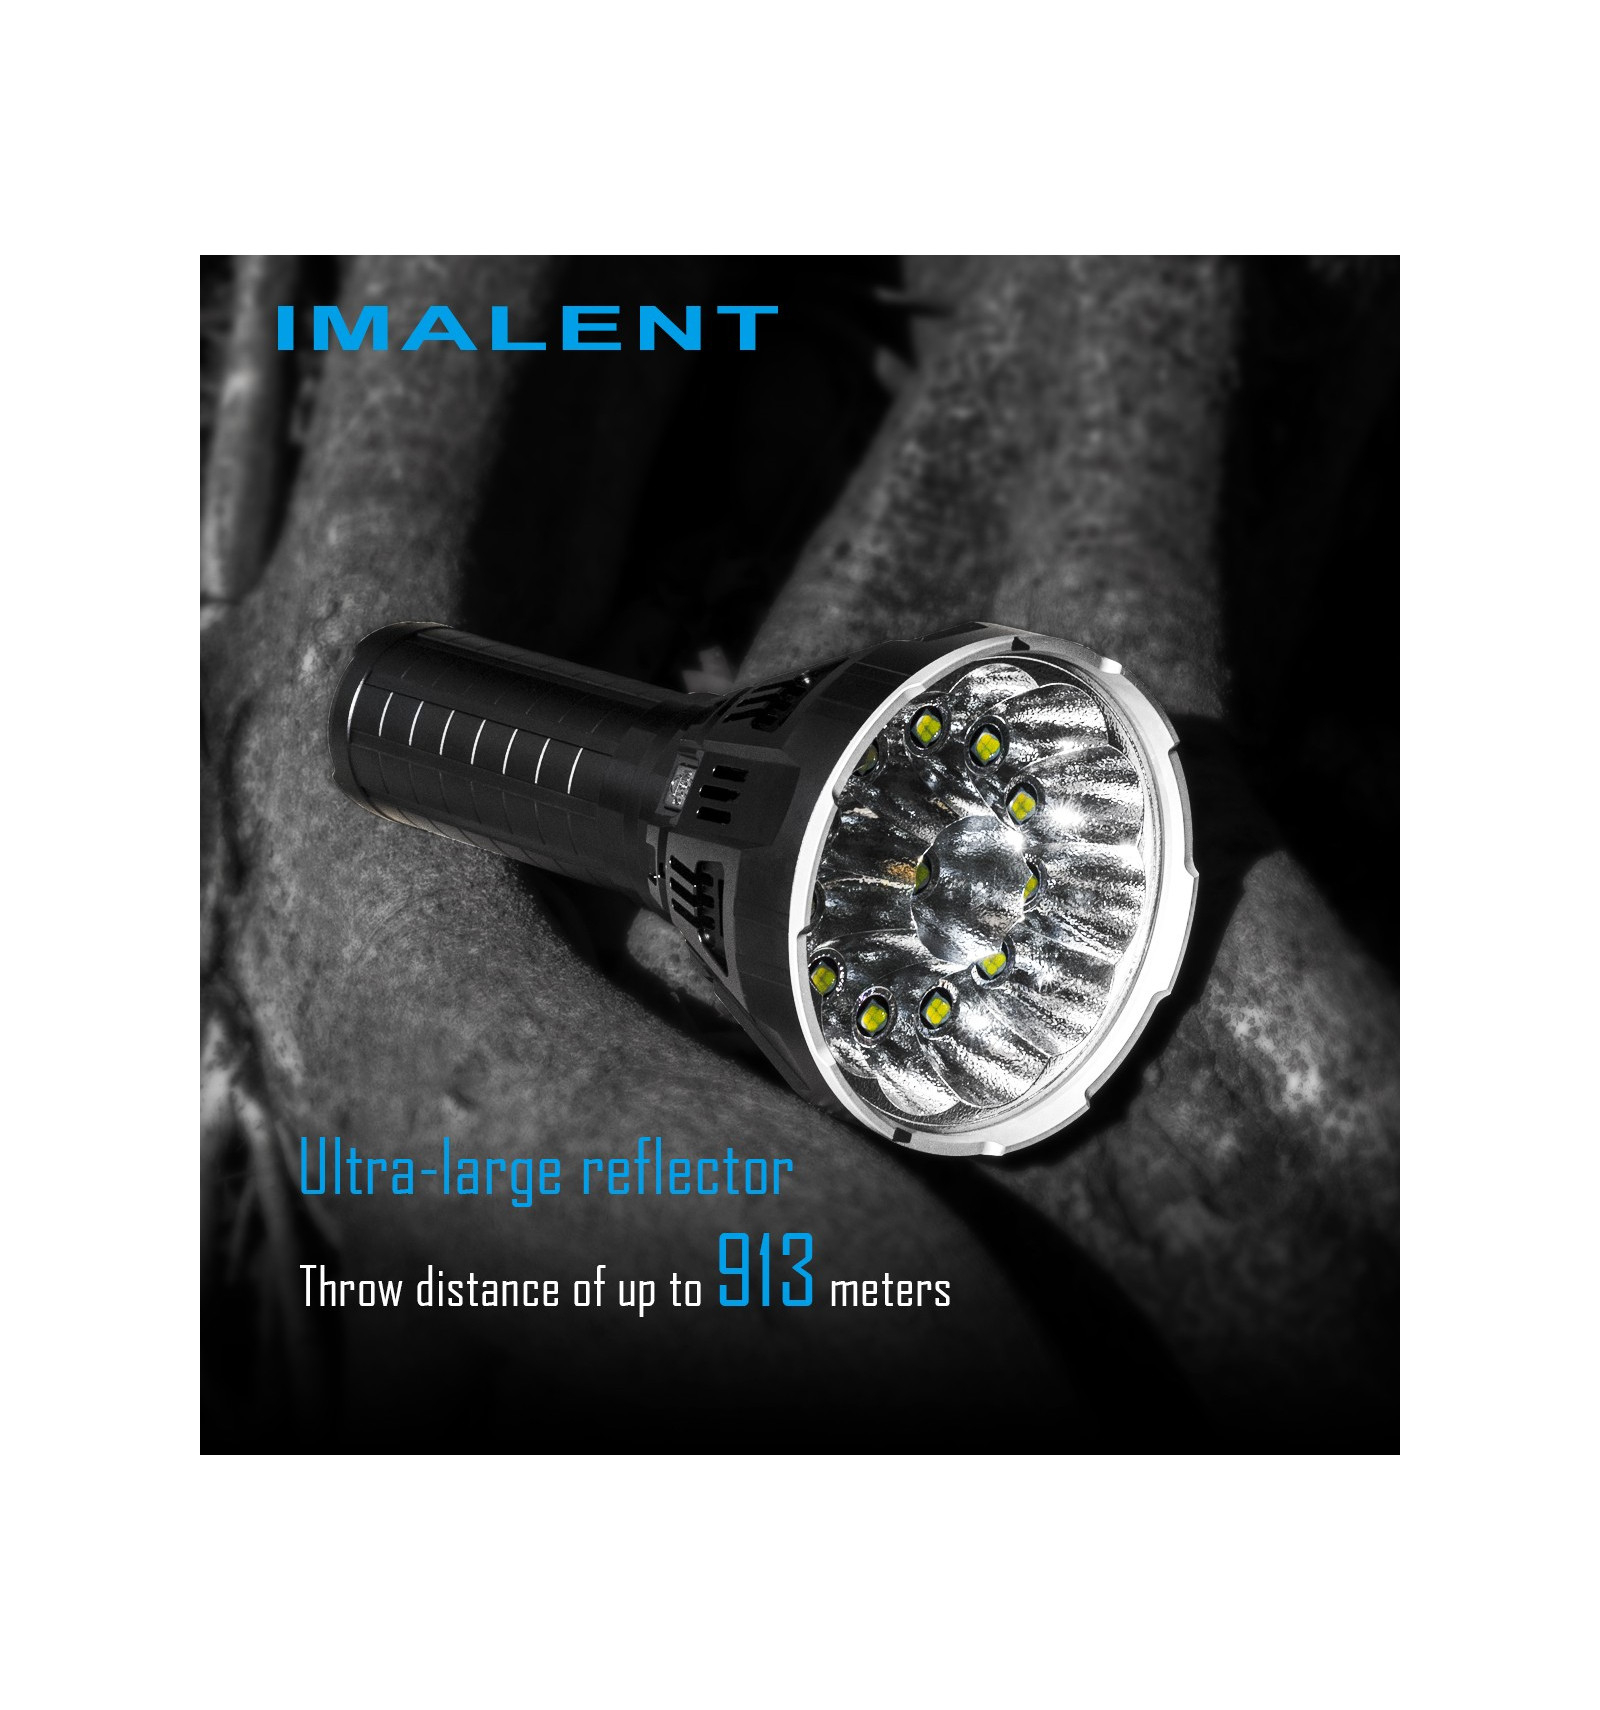 Imalent MS12, 53 000 lumen, 913m Throw